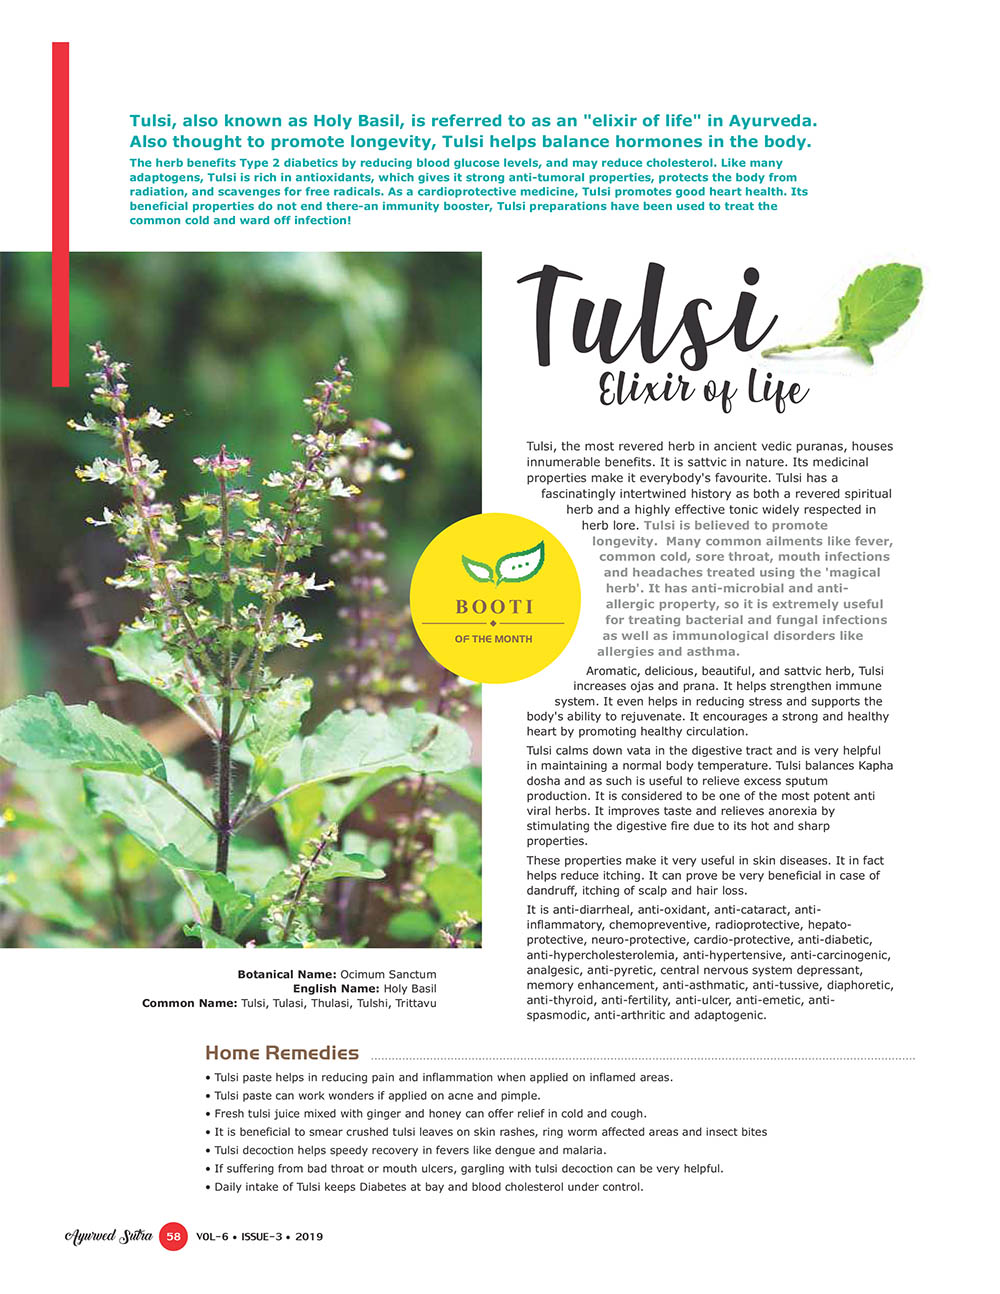 Ayurvedsutra Vol 06 issue 01 02 60 - Tulsi: Elixir of Life